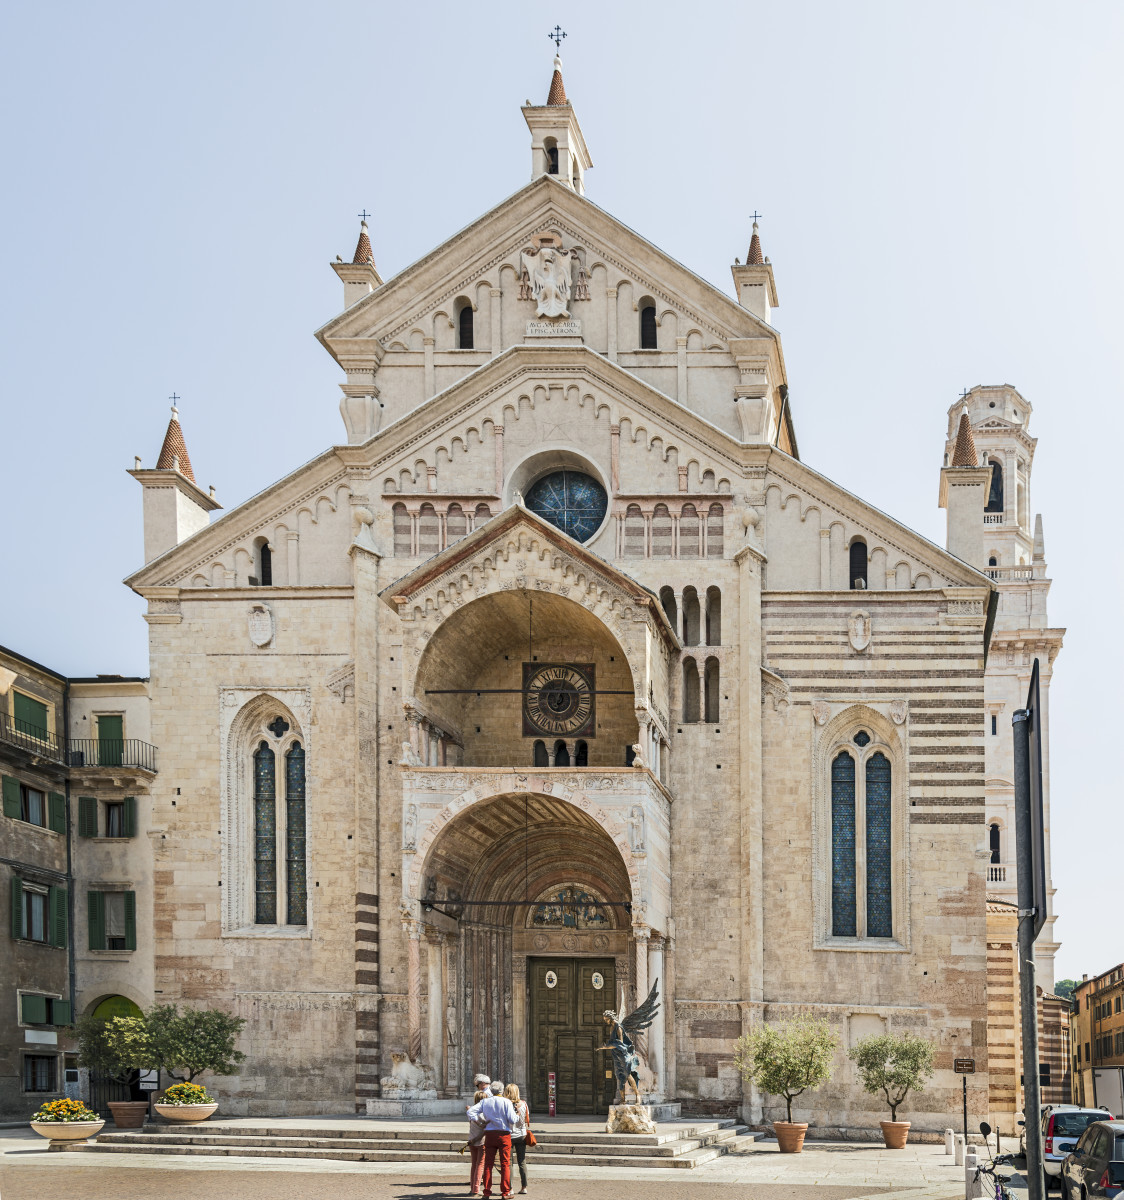 Exterior of the Duomo in Verona